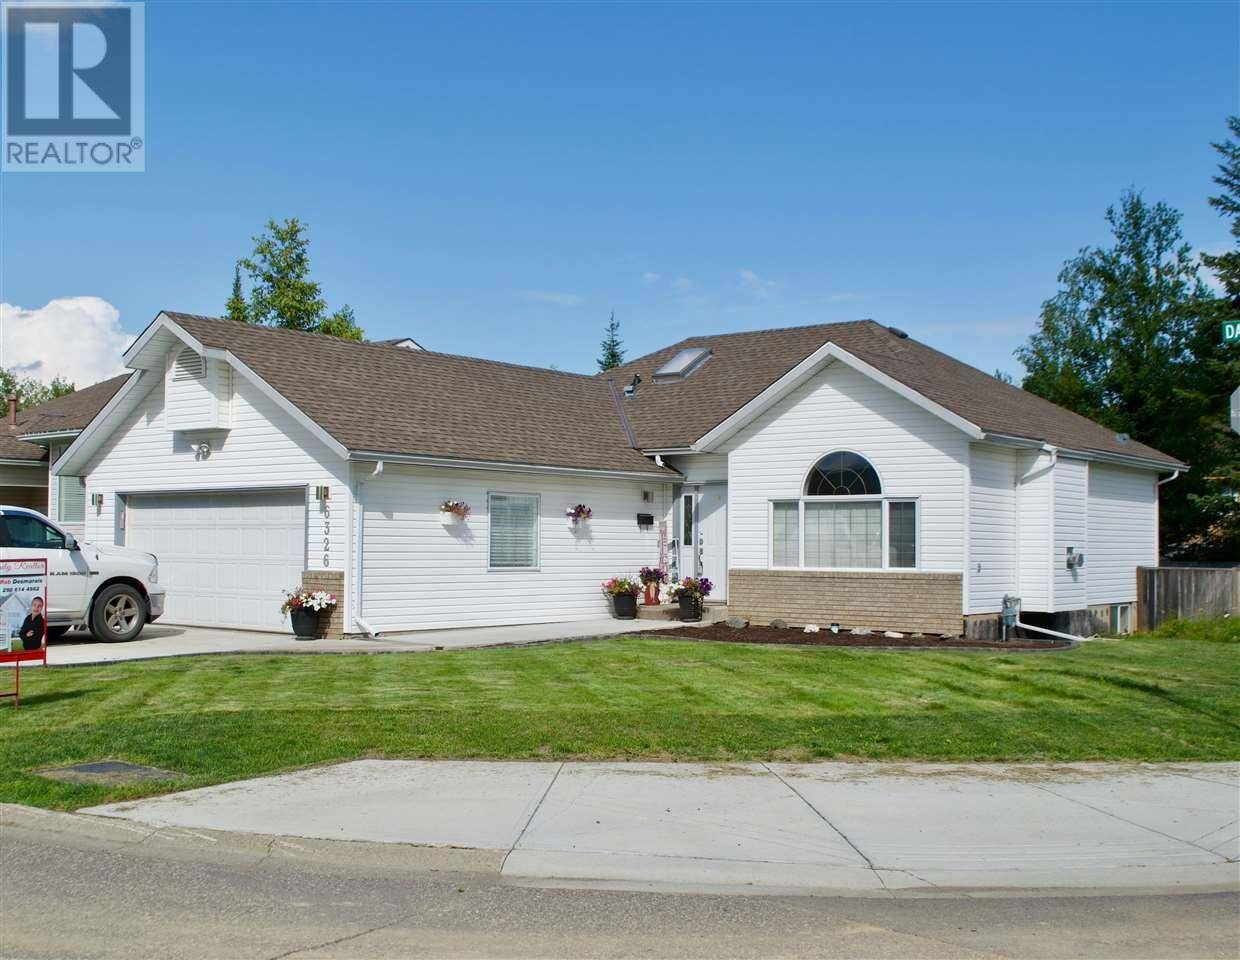 House for sale at 6326 Dawson Rd Prince George British Columbia - MLS: R2396079